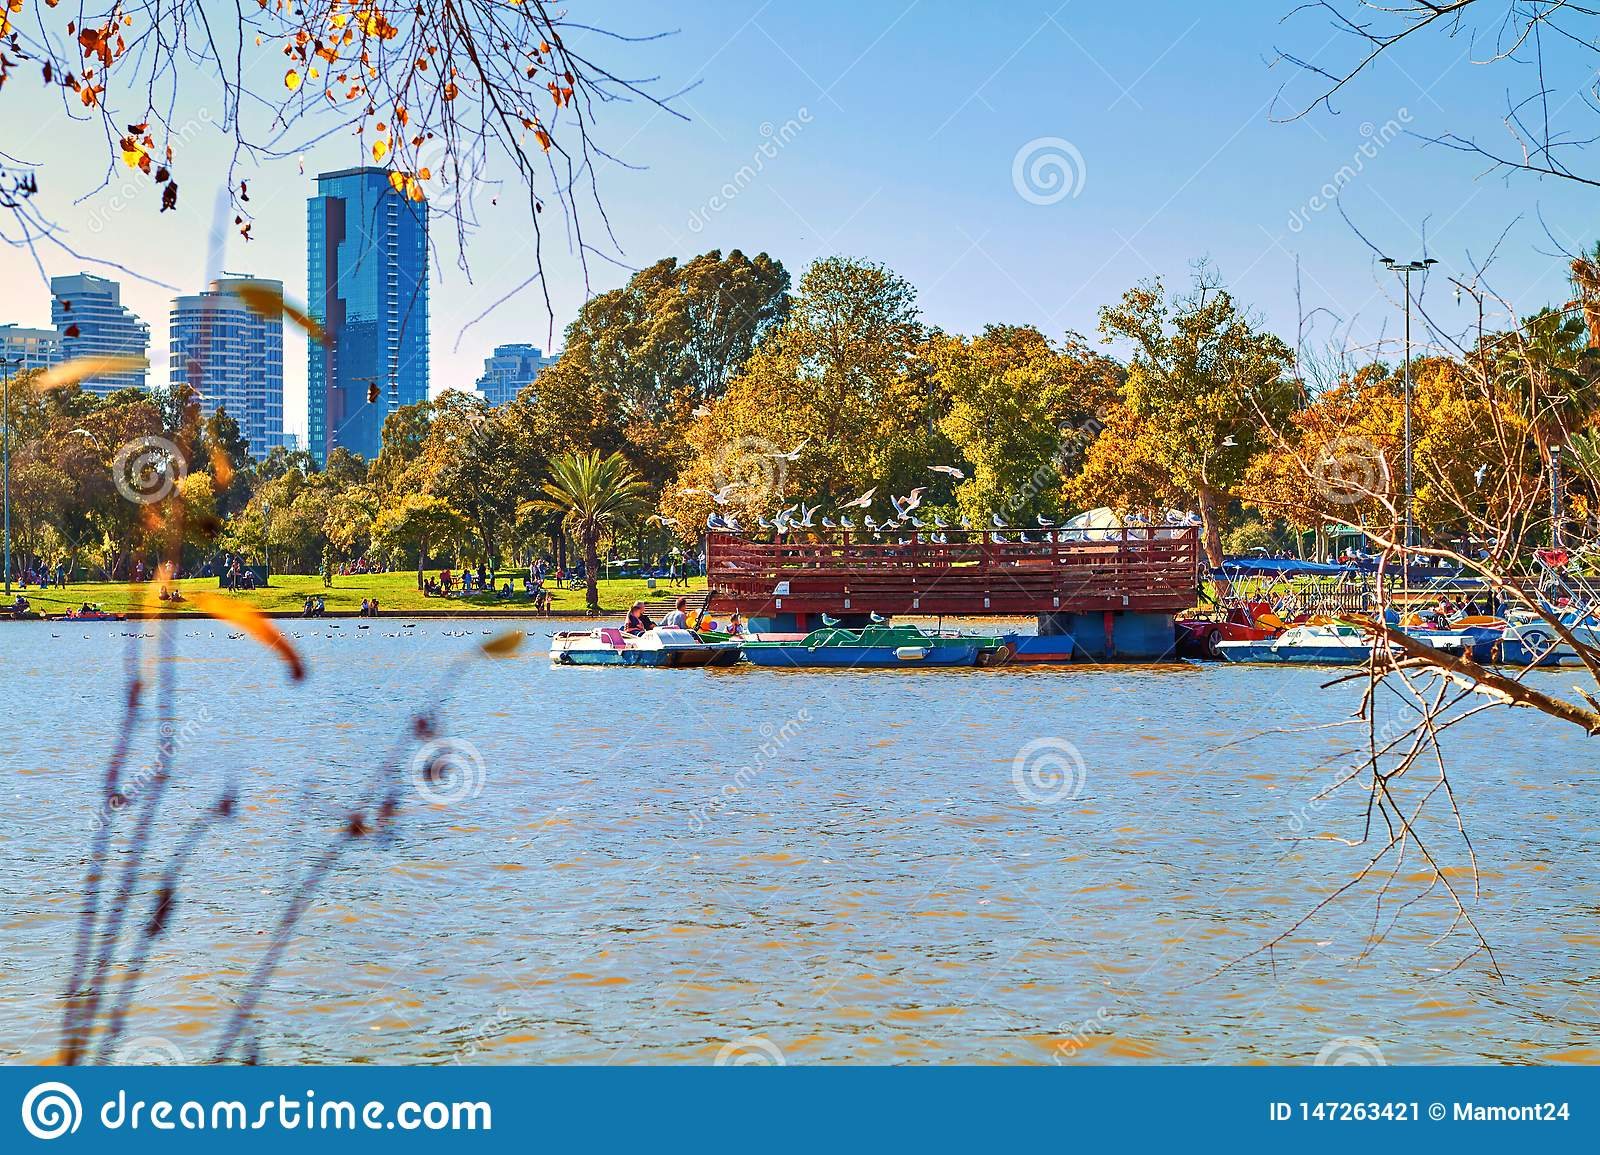 Boats in the park on a